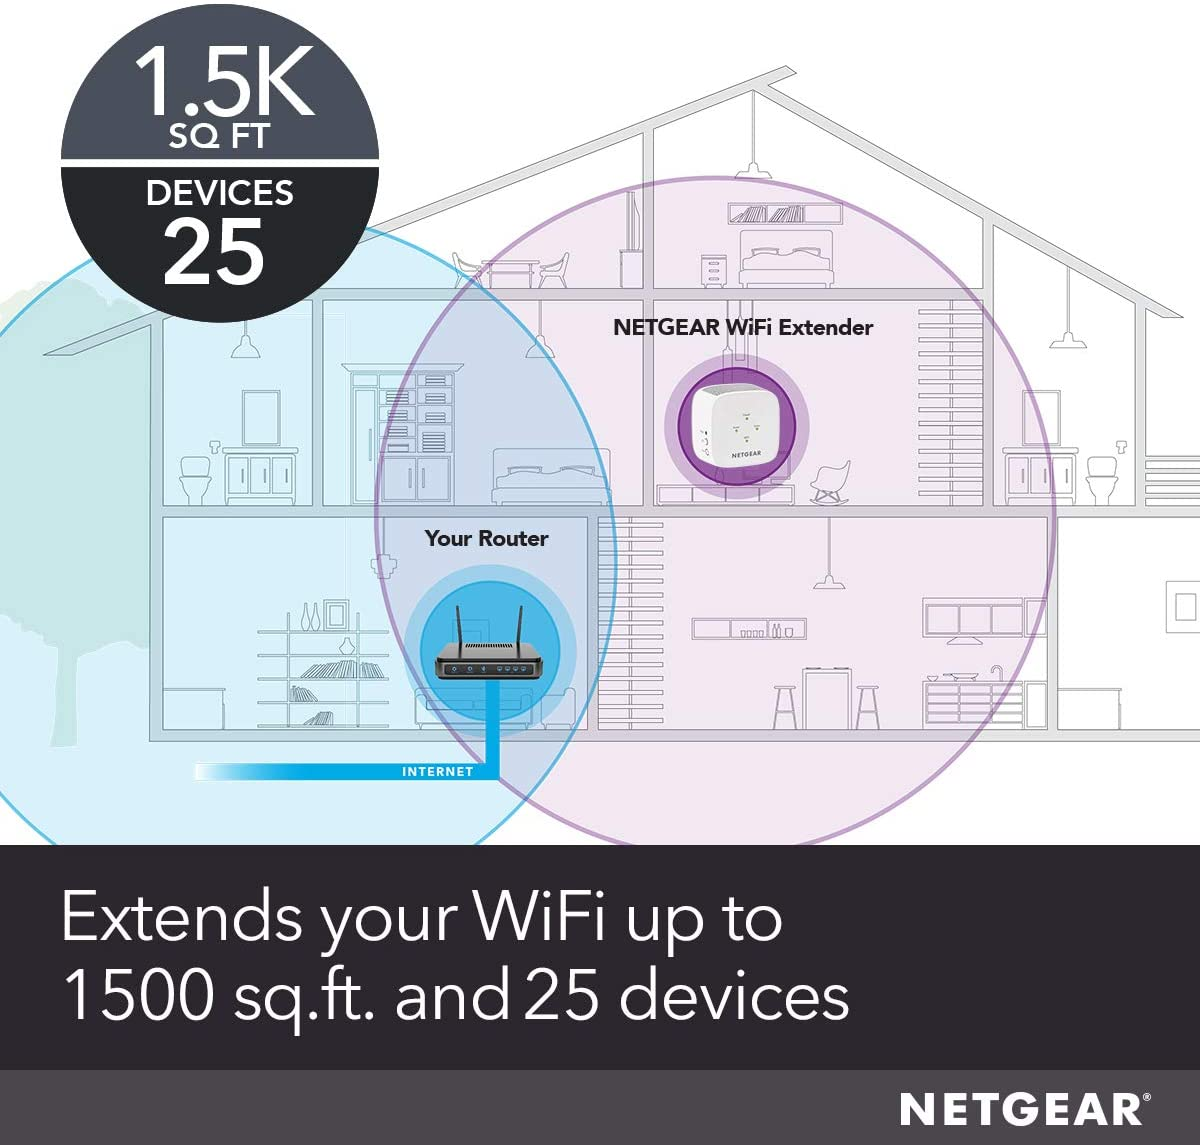 NETGEAR WiFi Range Extender EX2800 up to 750Mbps Speed and Compact Wall Plug Design and 20 Devices with AC750 Dual Band Wireless Signal Booster /& Repeater Renewed Coverage up to 1200 sq.ft